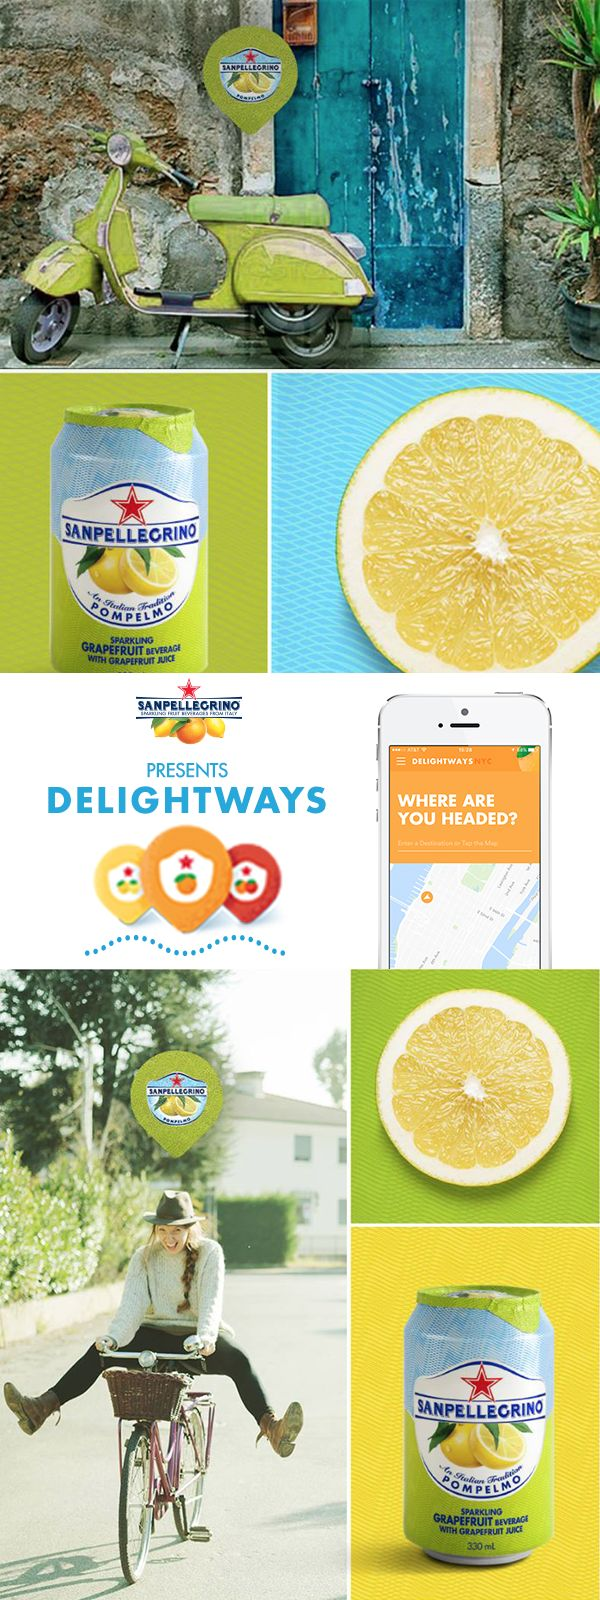 It's the little things that bring the most joy in life: the smell of sun-ripened fruit; the sparkling sips of a Sanpellegrino® Pompelo; or a sunny sky on a leisurely bike ride. These are what we call The Life Deliziosa. Find your own moments and savor in every sip with the Delightways app for iOS and Android.